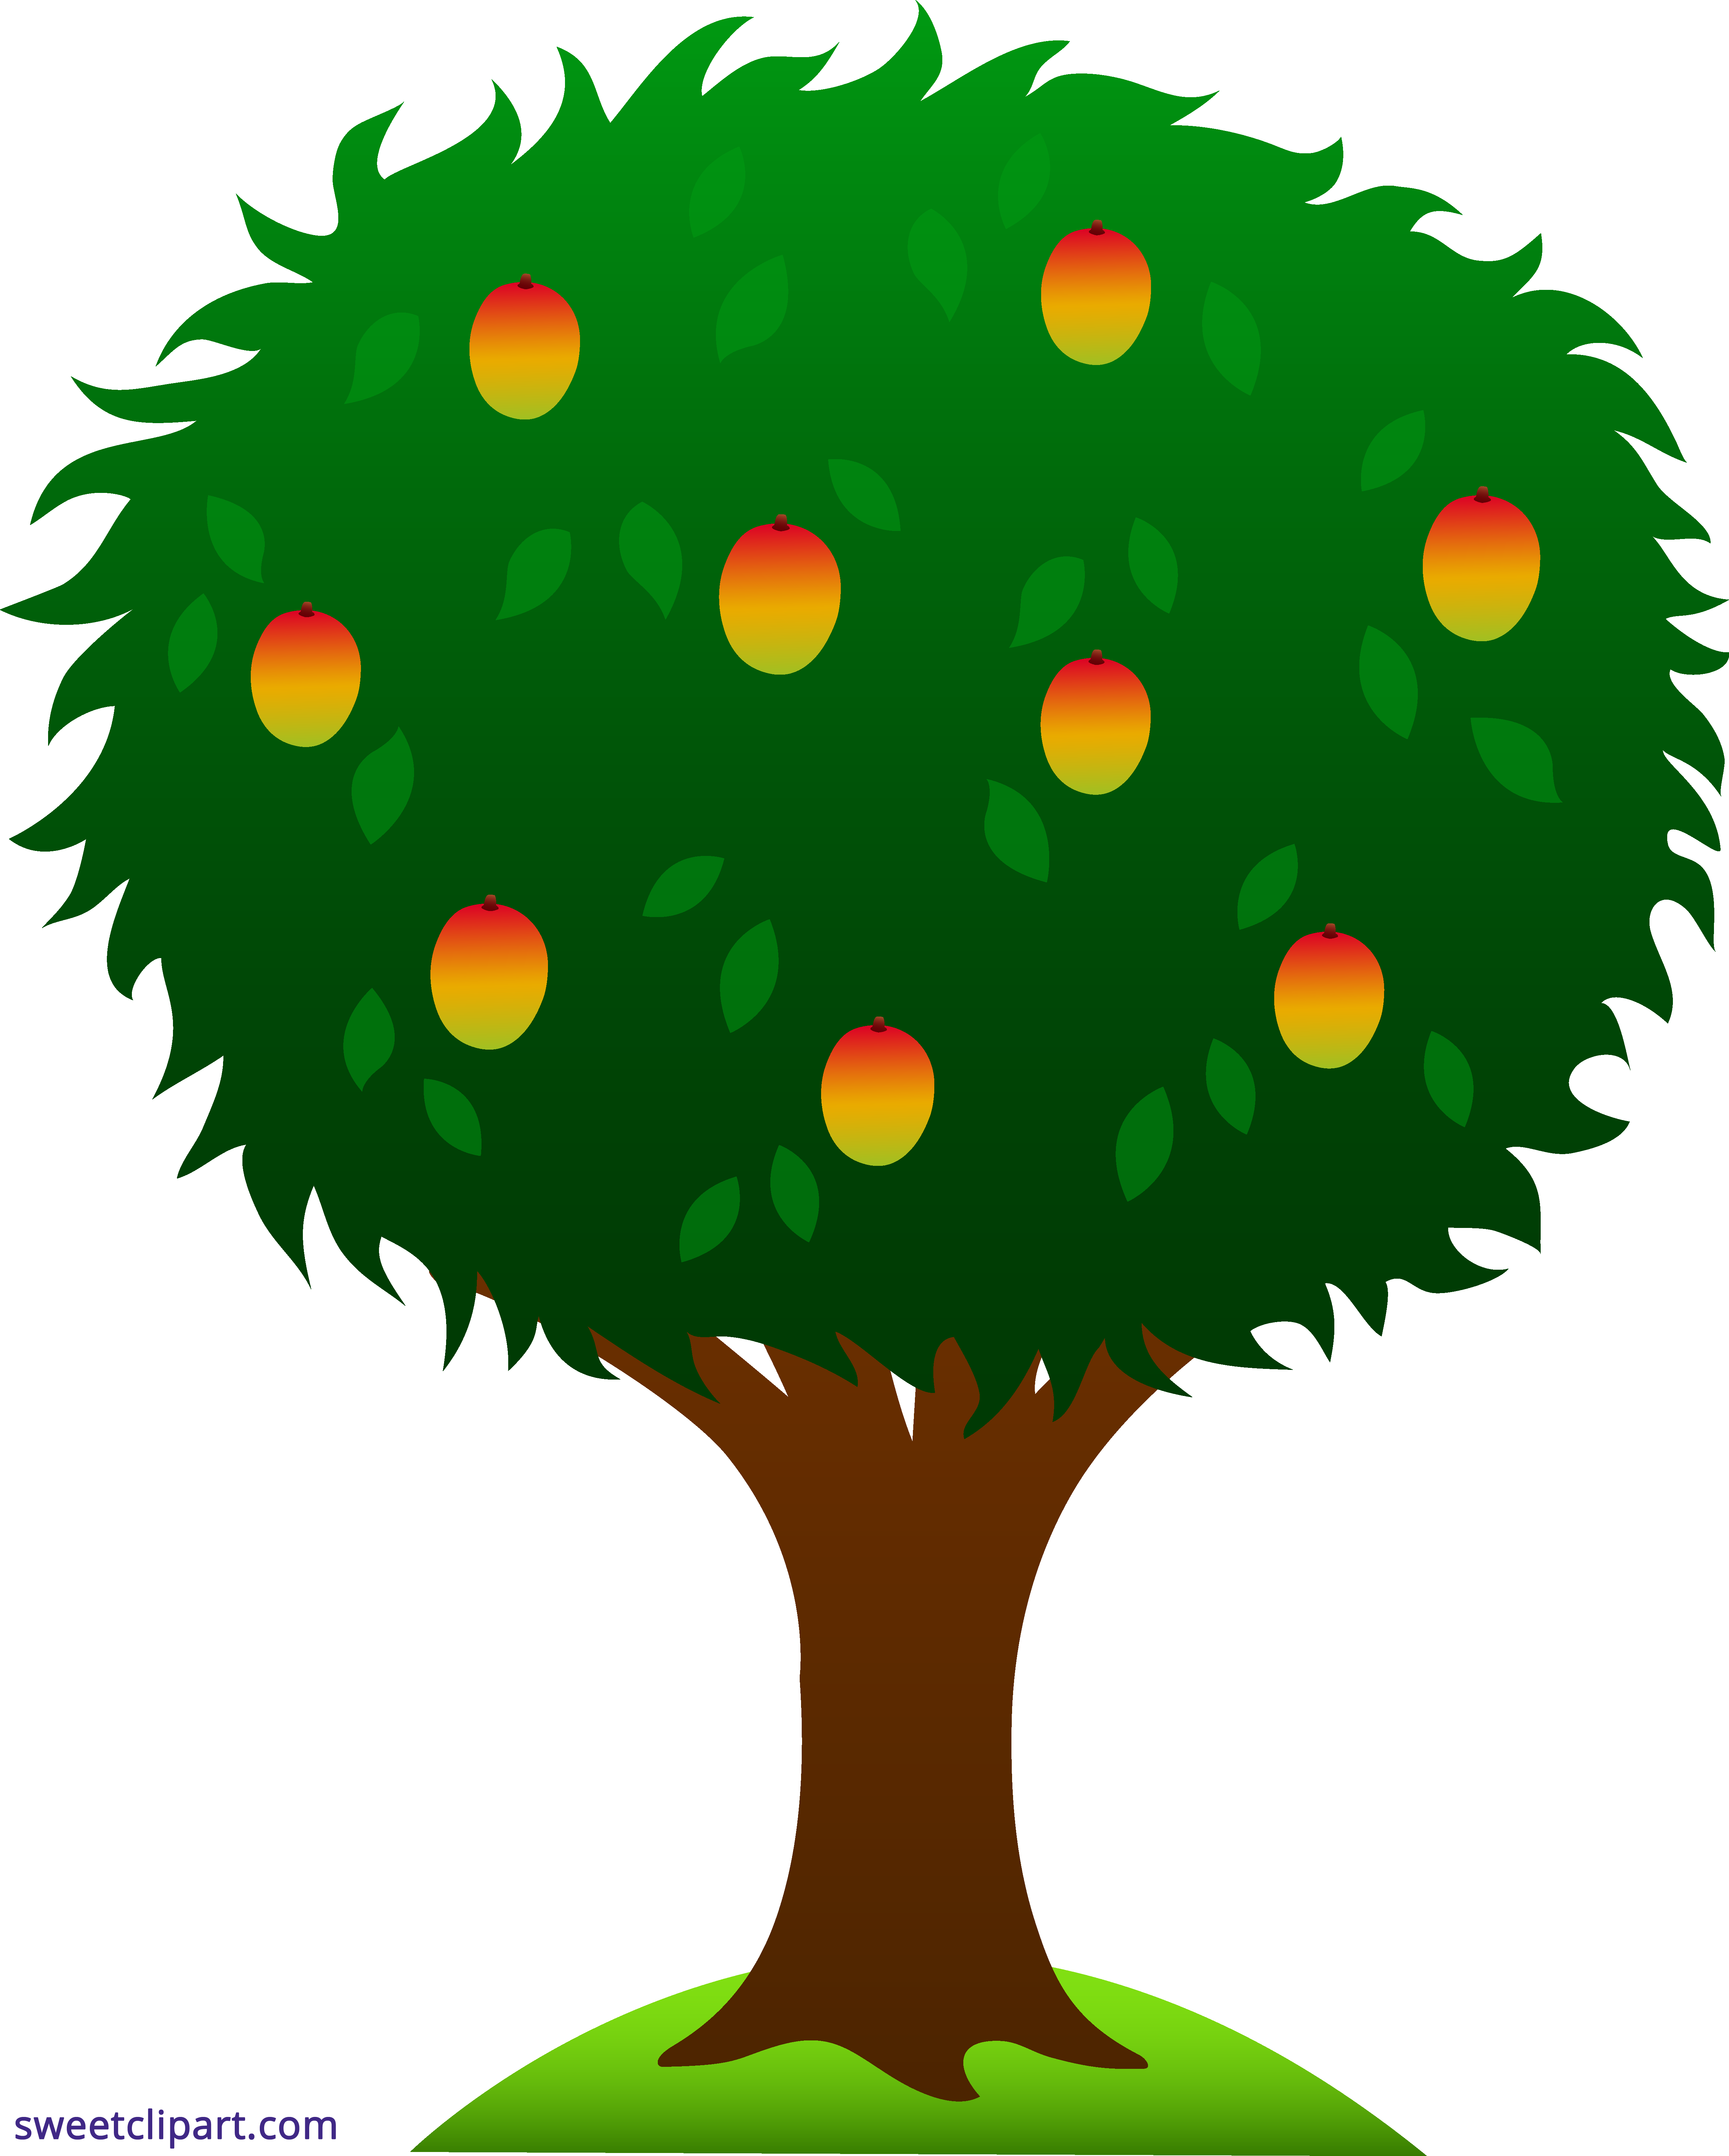 Blue tree clipart picture stock Mango Tree Clipart - Sweet Clip Art picture stock